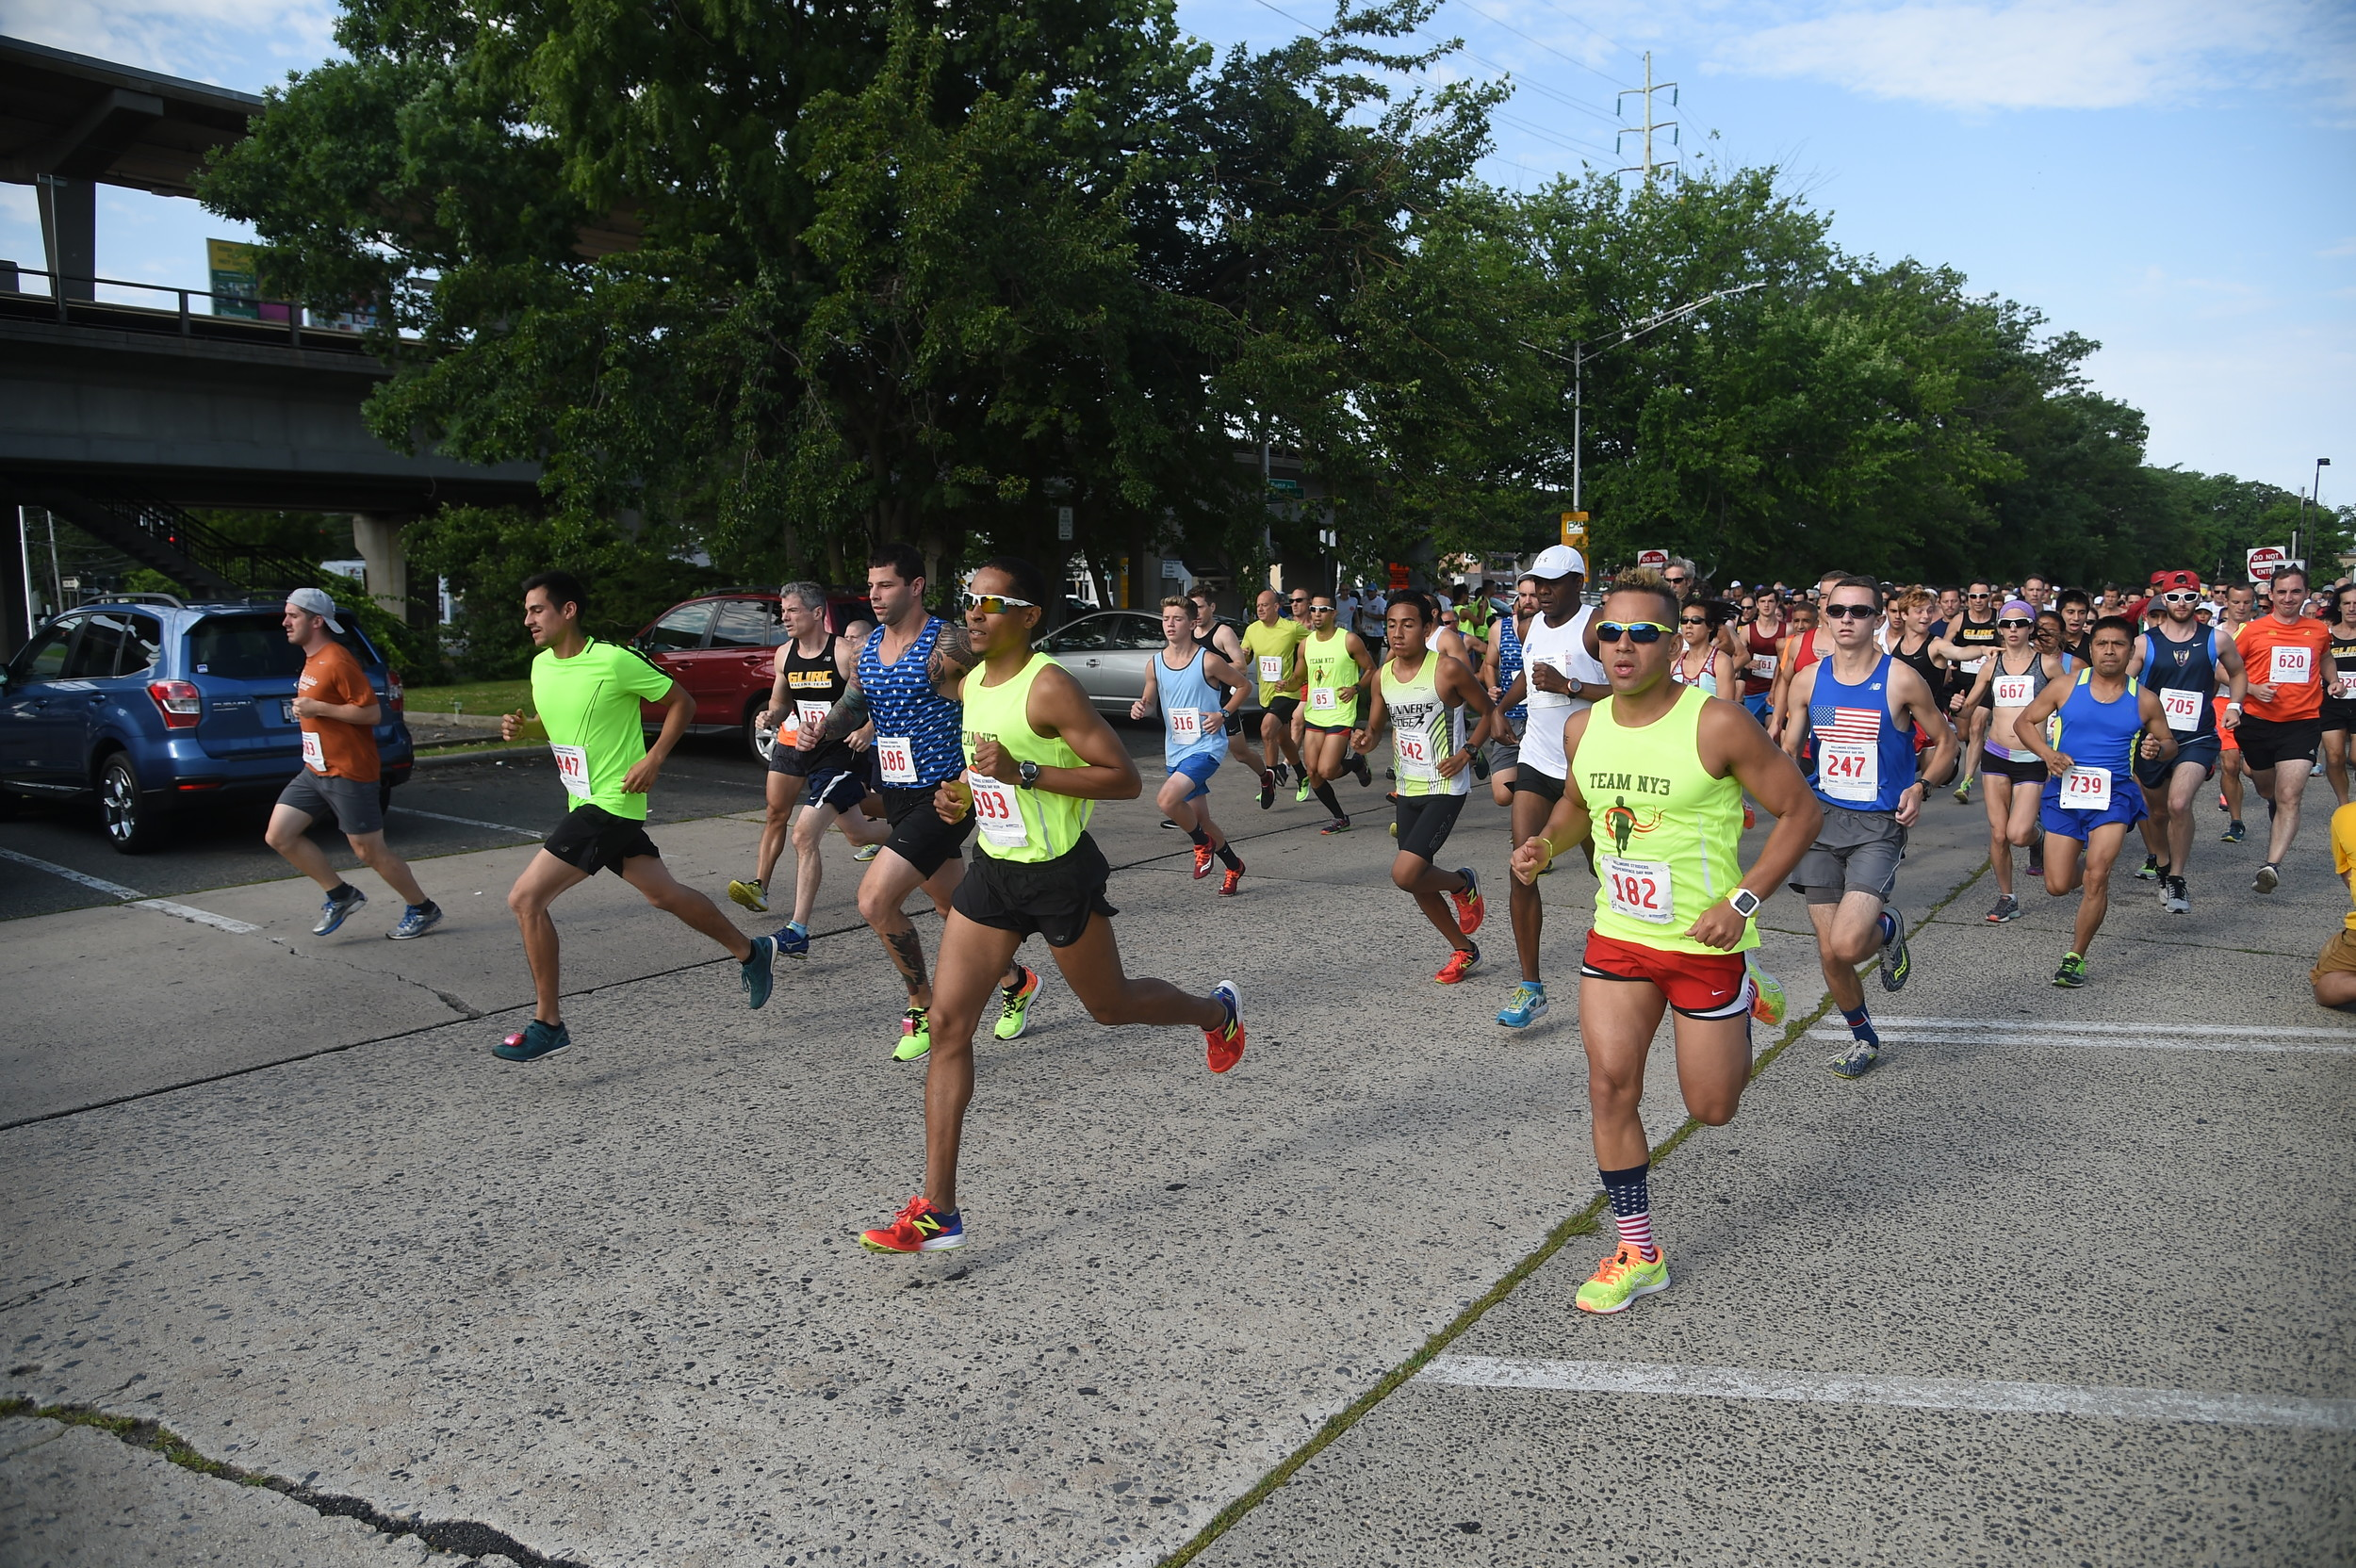 Hundreds of runners from near and far took part in the 35th annual Bellmore Striders Independence Day run.